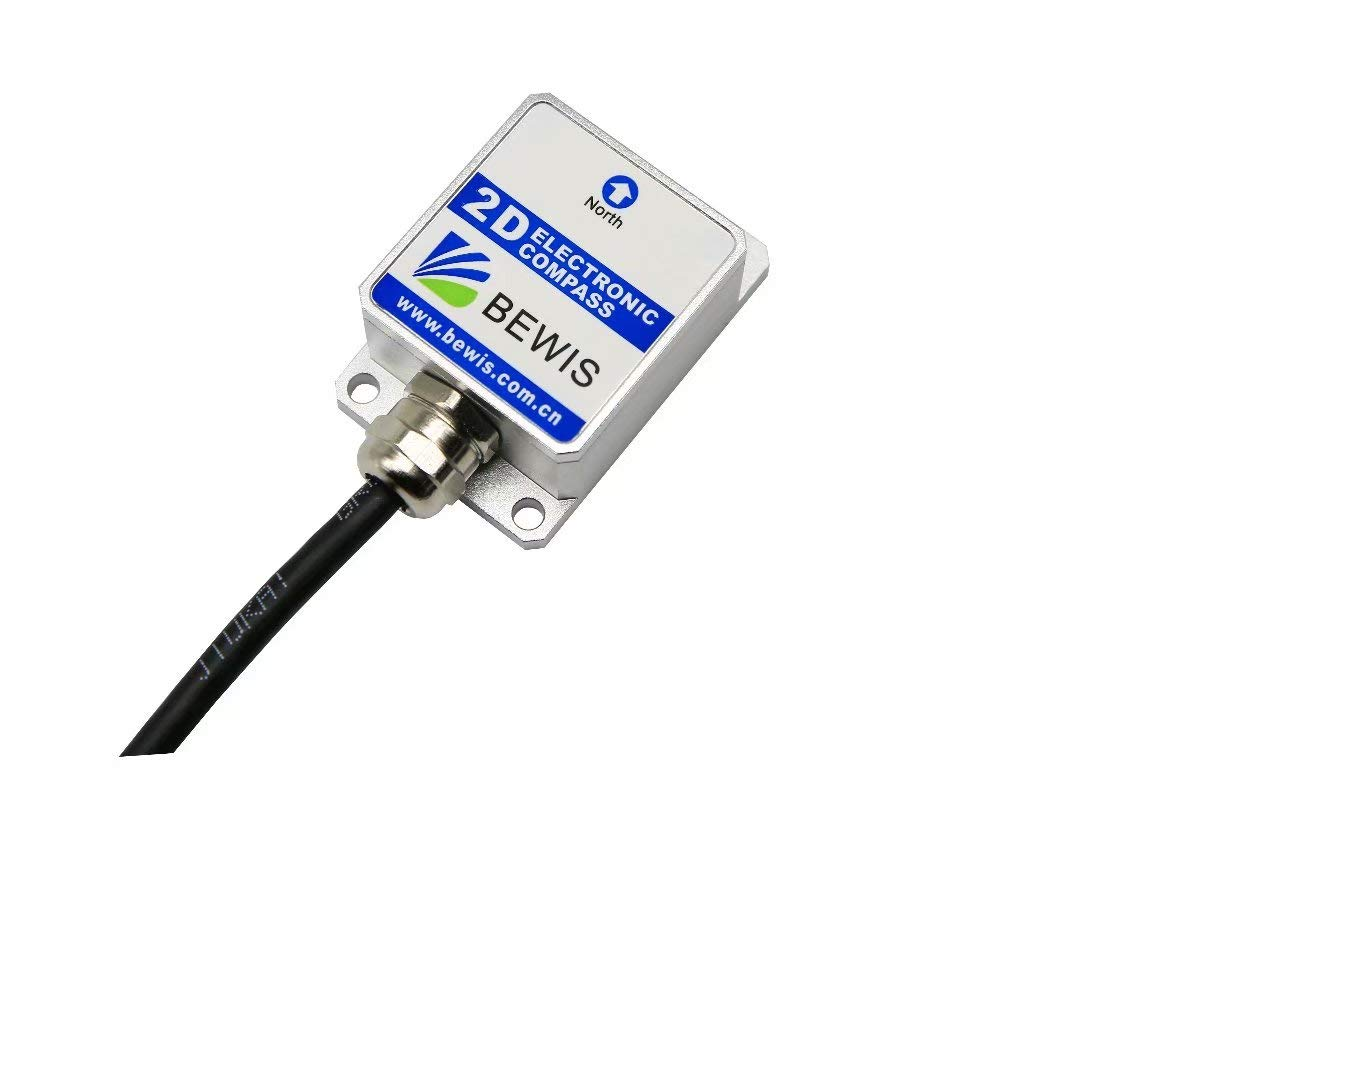 2D Digital Compass inclinometer Sensor LEC210 with Heading Accuracy 2 Degree and RS232,RS485,TTL,Modbus Output